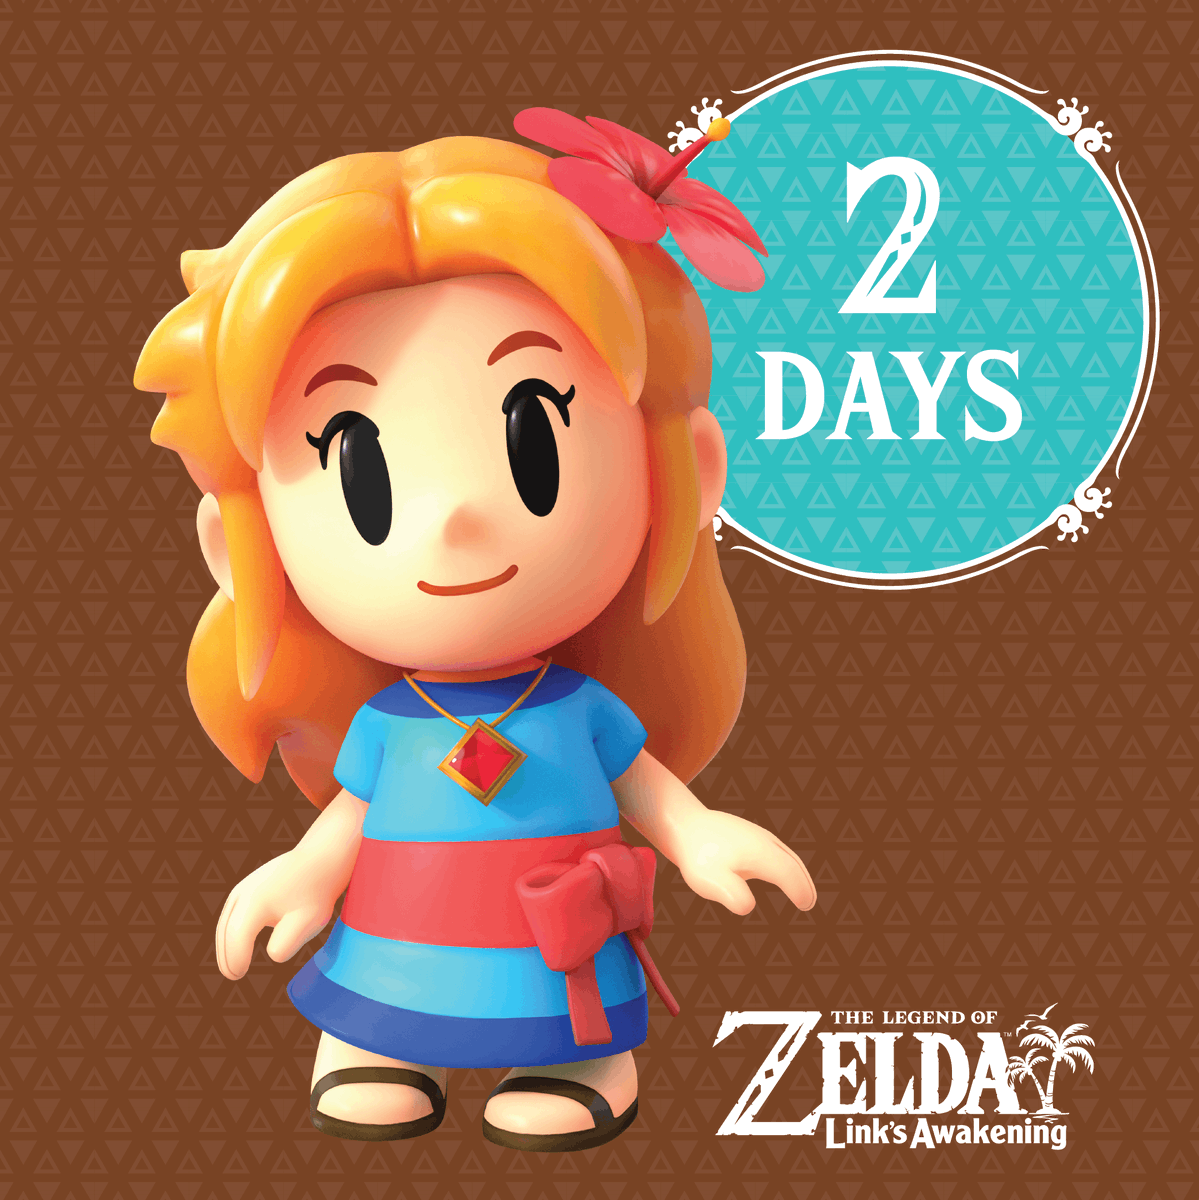 Only two days remain until Link meets Marin and the other inhabitants of Koholint Island in The Legend of #Zelda: Link's Awakening.Relive the classic story on #NintendoSwitch this Friday: http://bit.ly/2zs2dMP